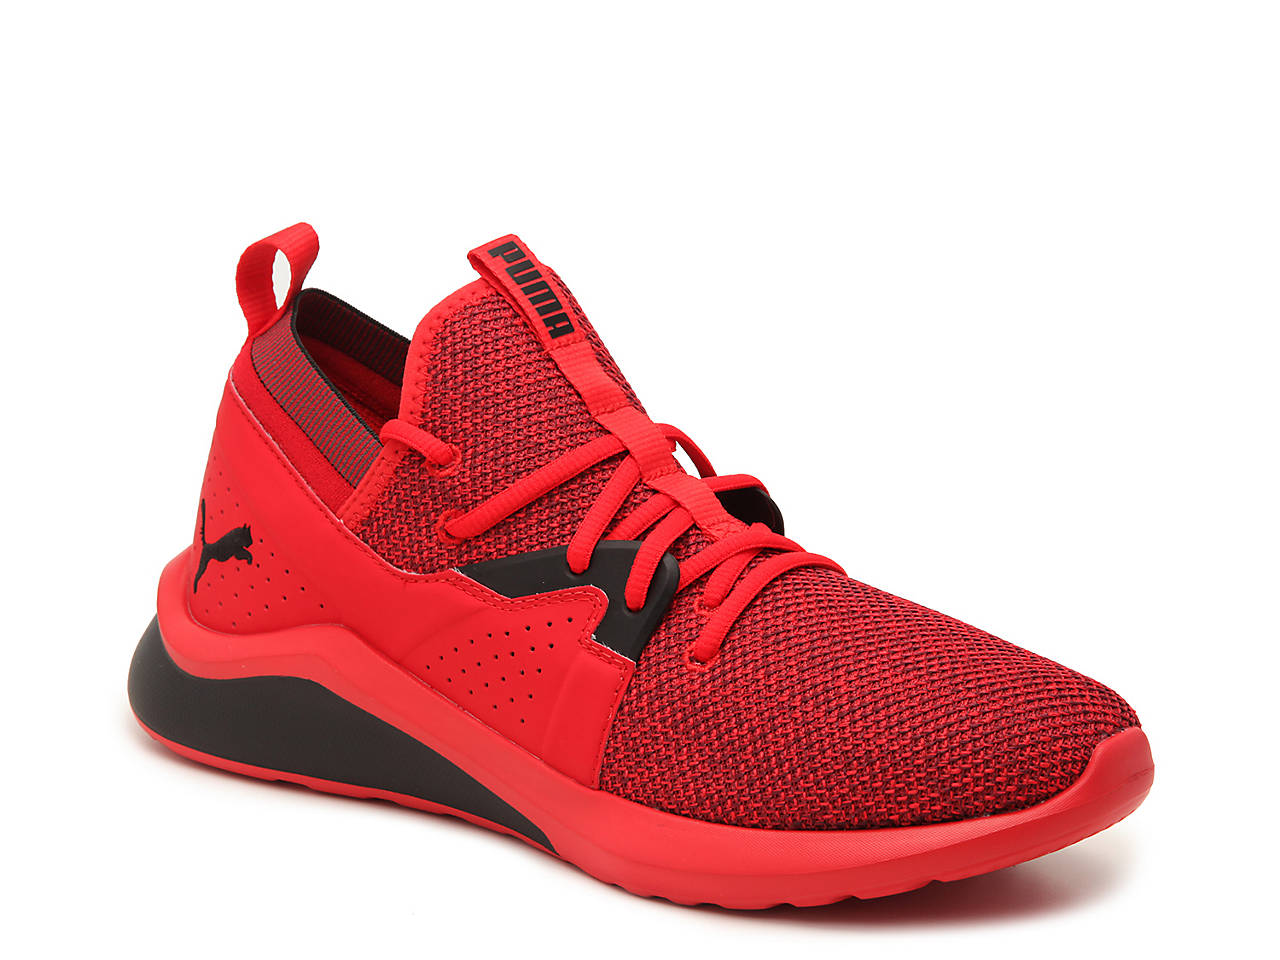 Puma Emergence Future Sneaker Men's Men's Shoes | DSW